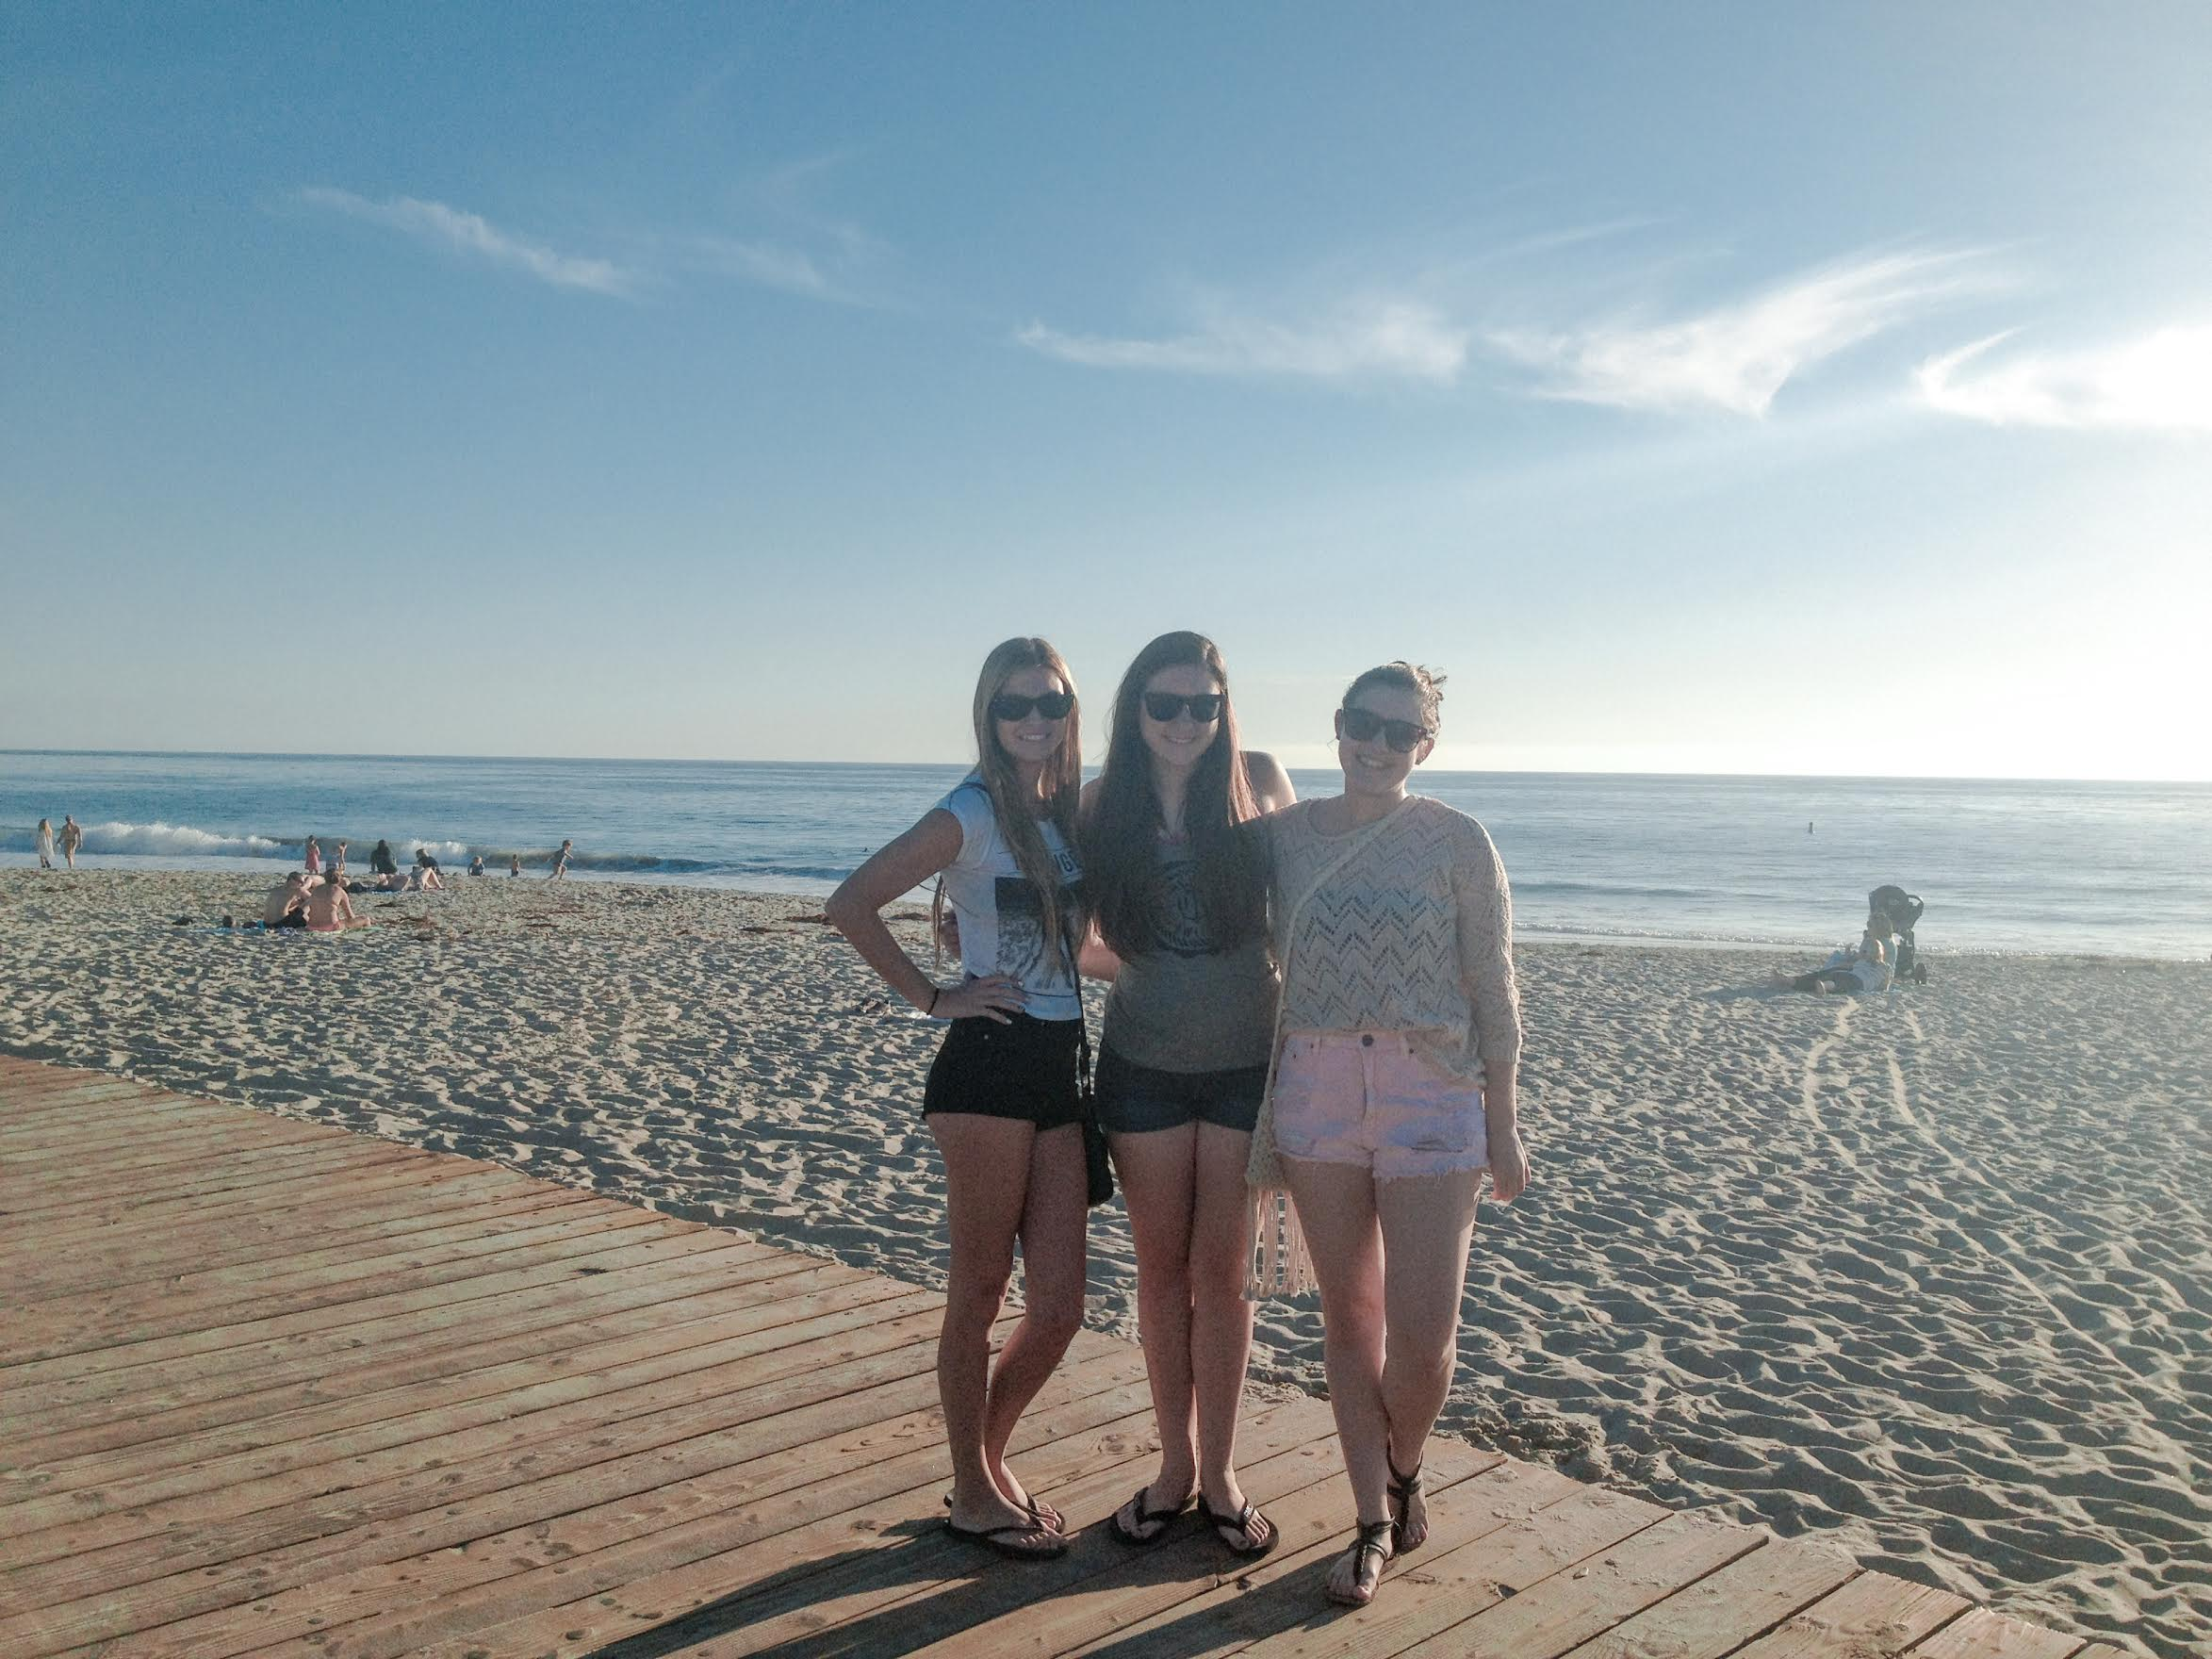 My friends Leah, Colette, and I on one of my first trips to L.A. circa 2013.